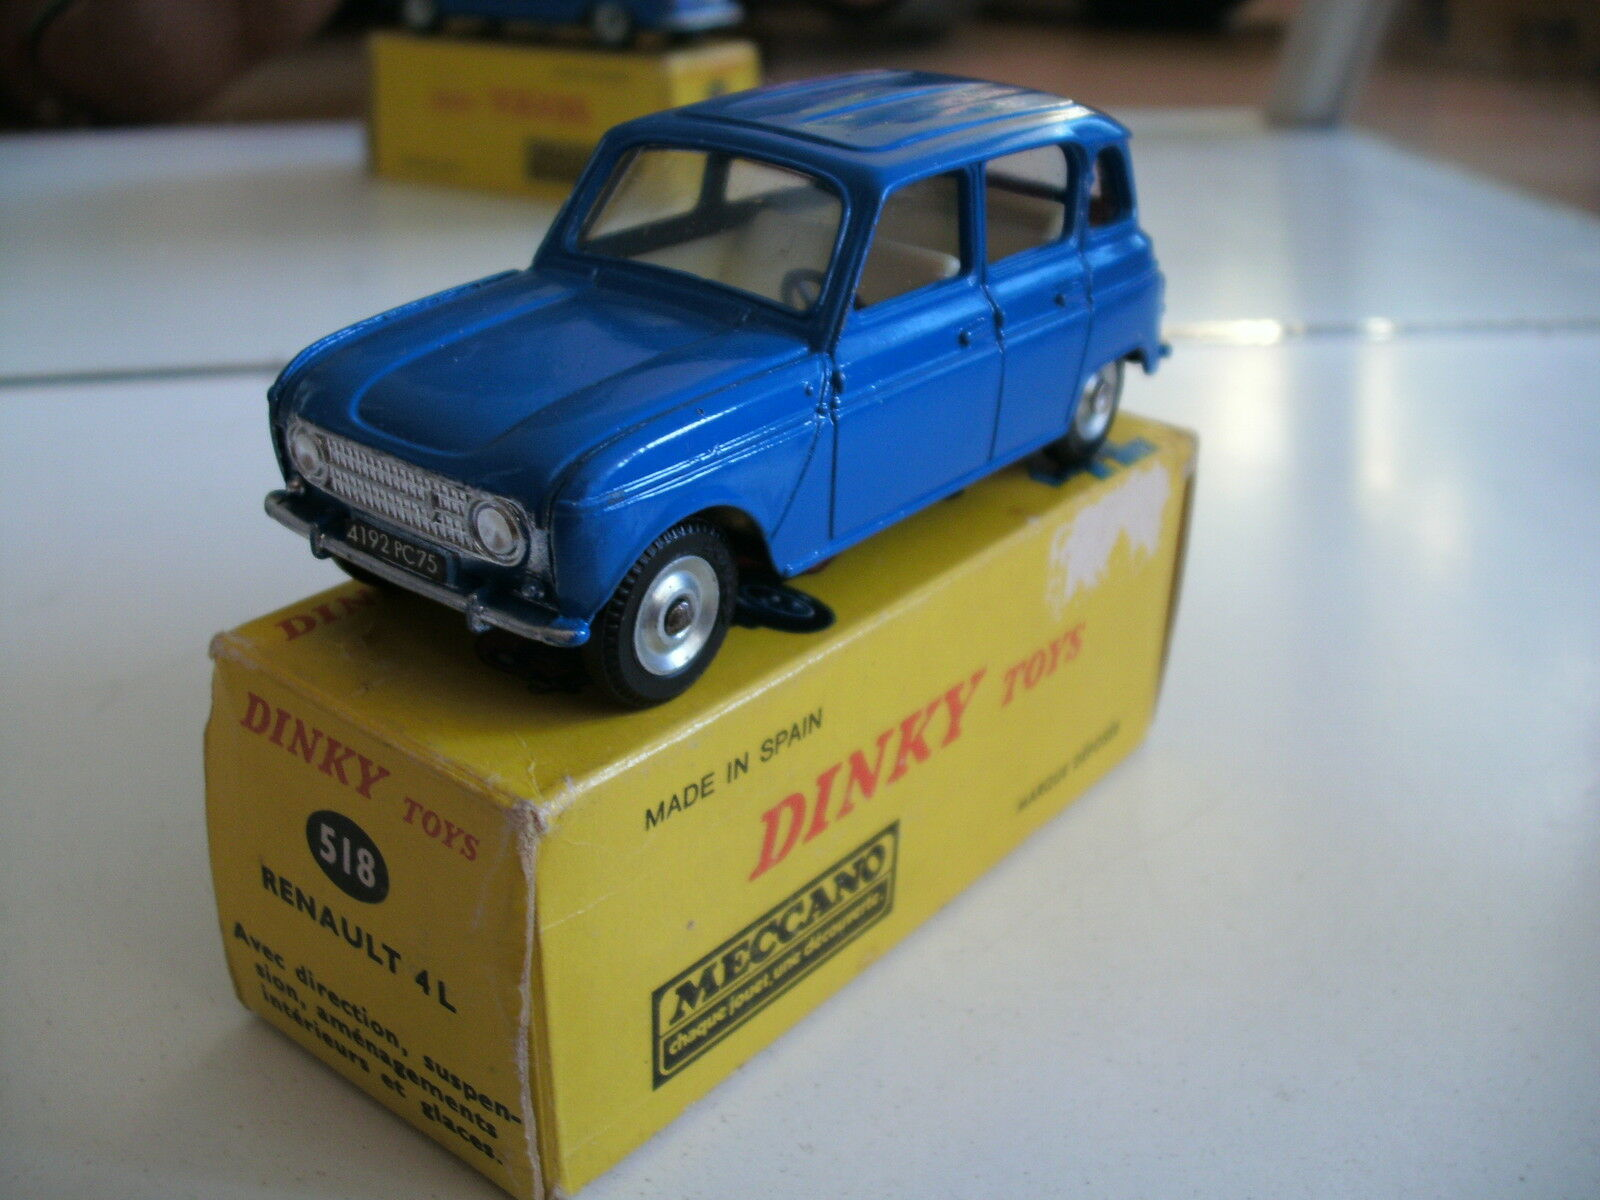 caliente Dinky Juguetes Renault 4L in azul azul azul on 1 43 in Box (Made in Spain)  descuento online